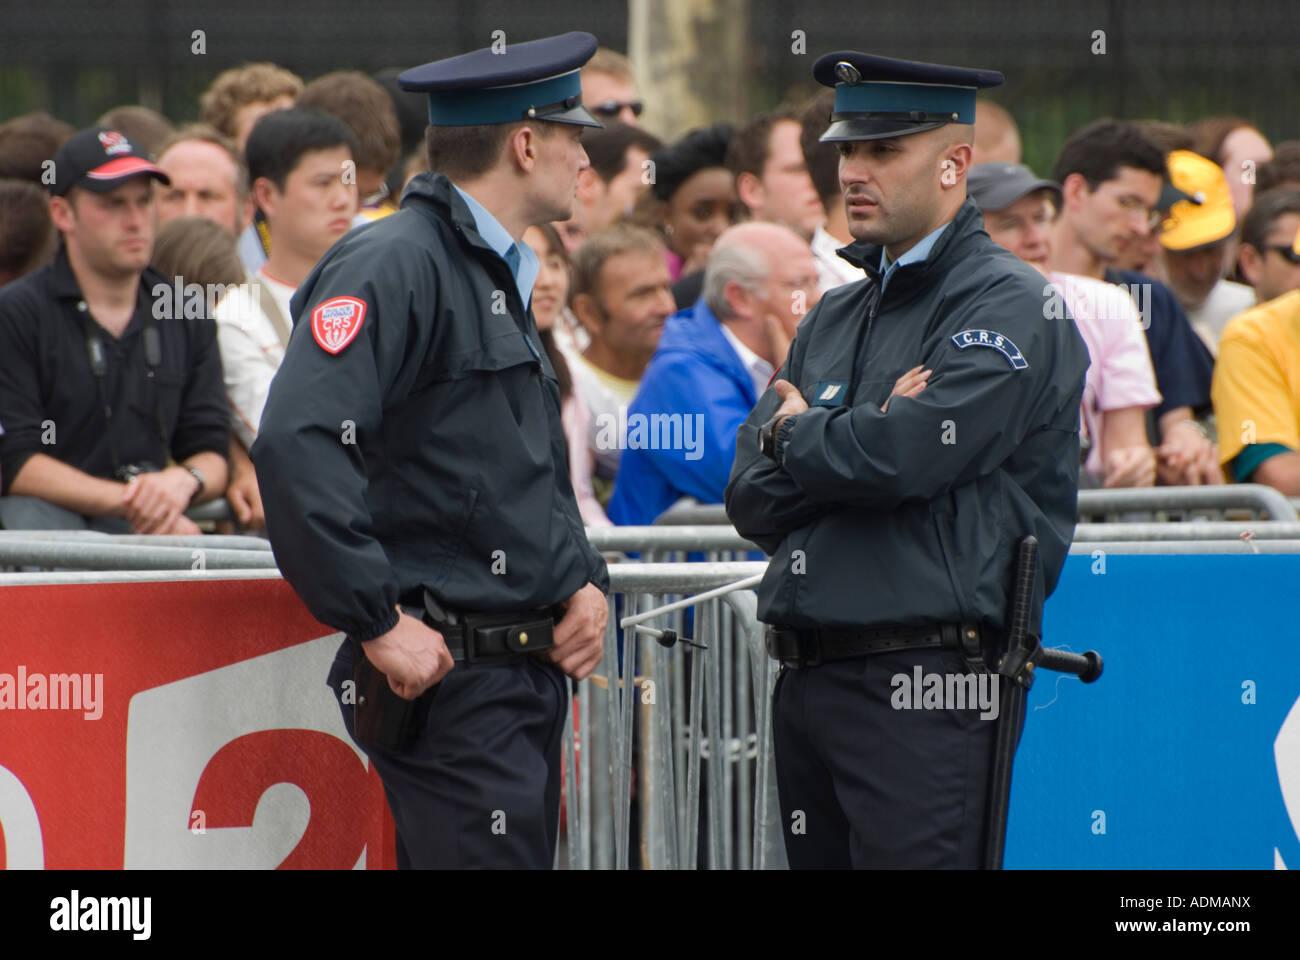 Crs police in paris at the tour de france 2007 stock photo for Police tours